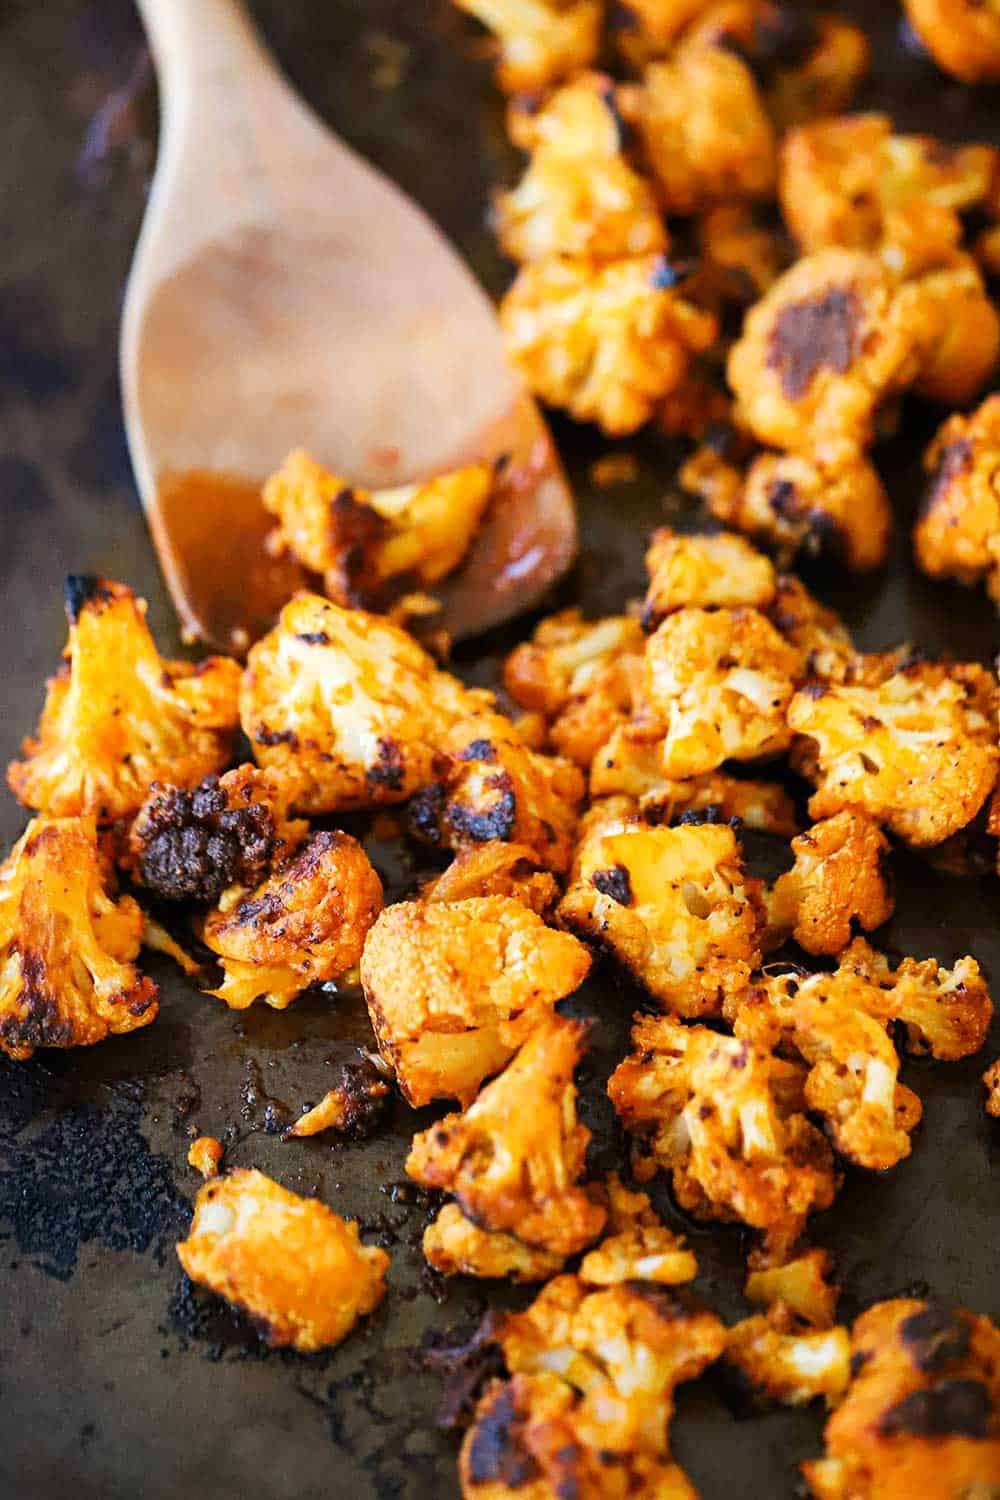 A baking dish filled with buffalo cauliflower bites with a wooden spoon inserted in the middle of them.